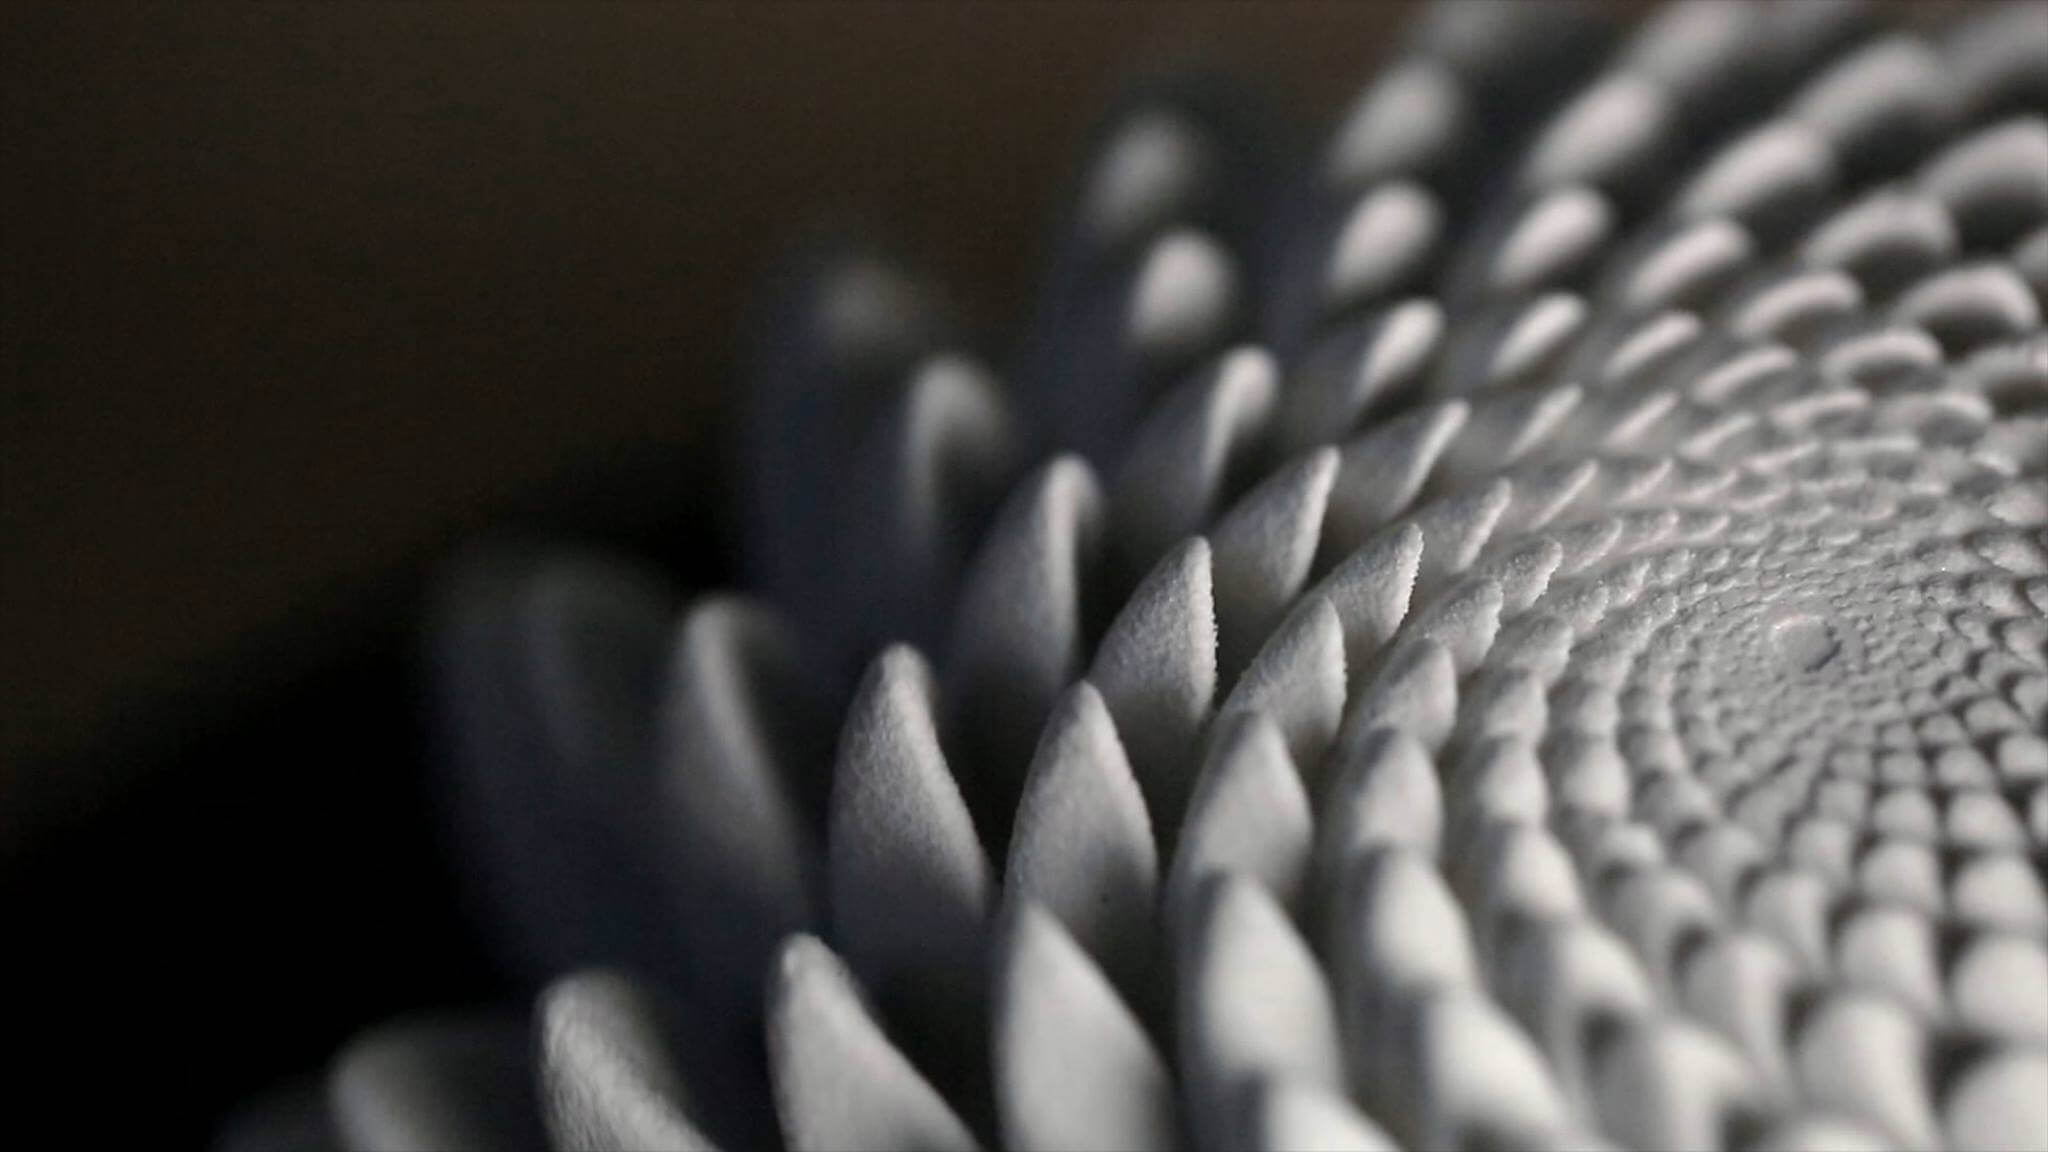 Blooms: 3D Printed Sculptures that Animate Under Strobe Light | All3DP